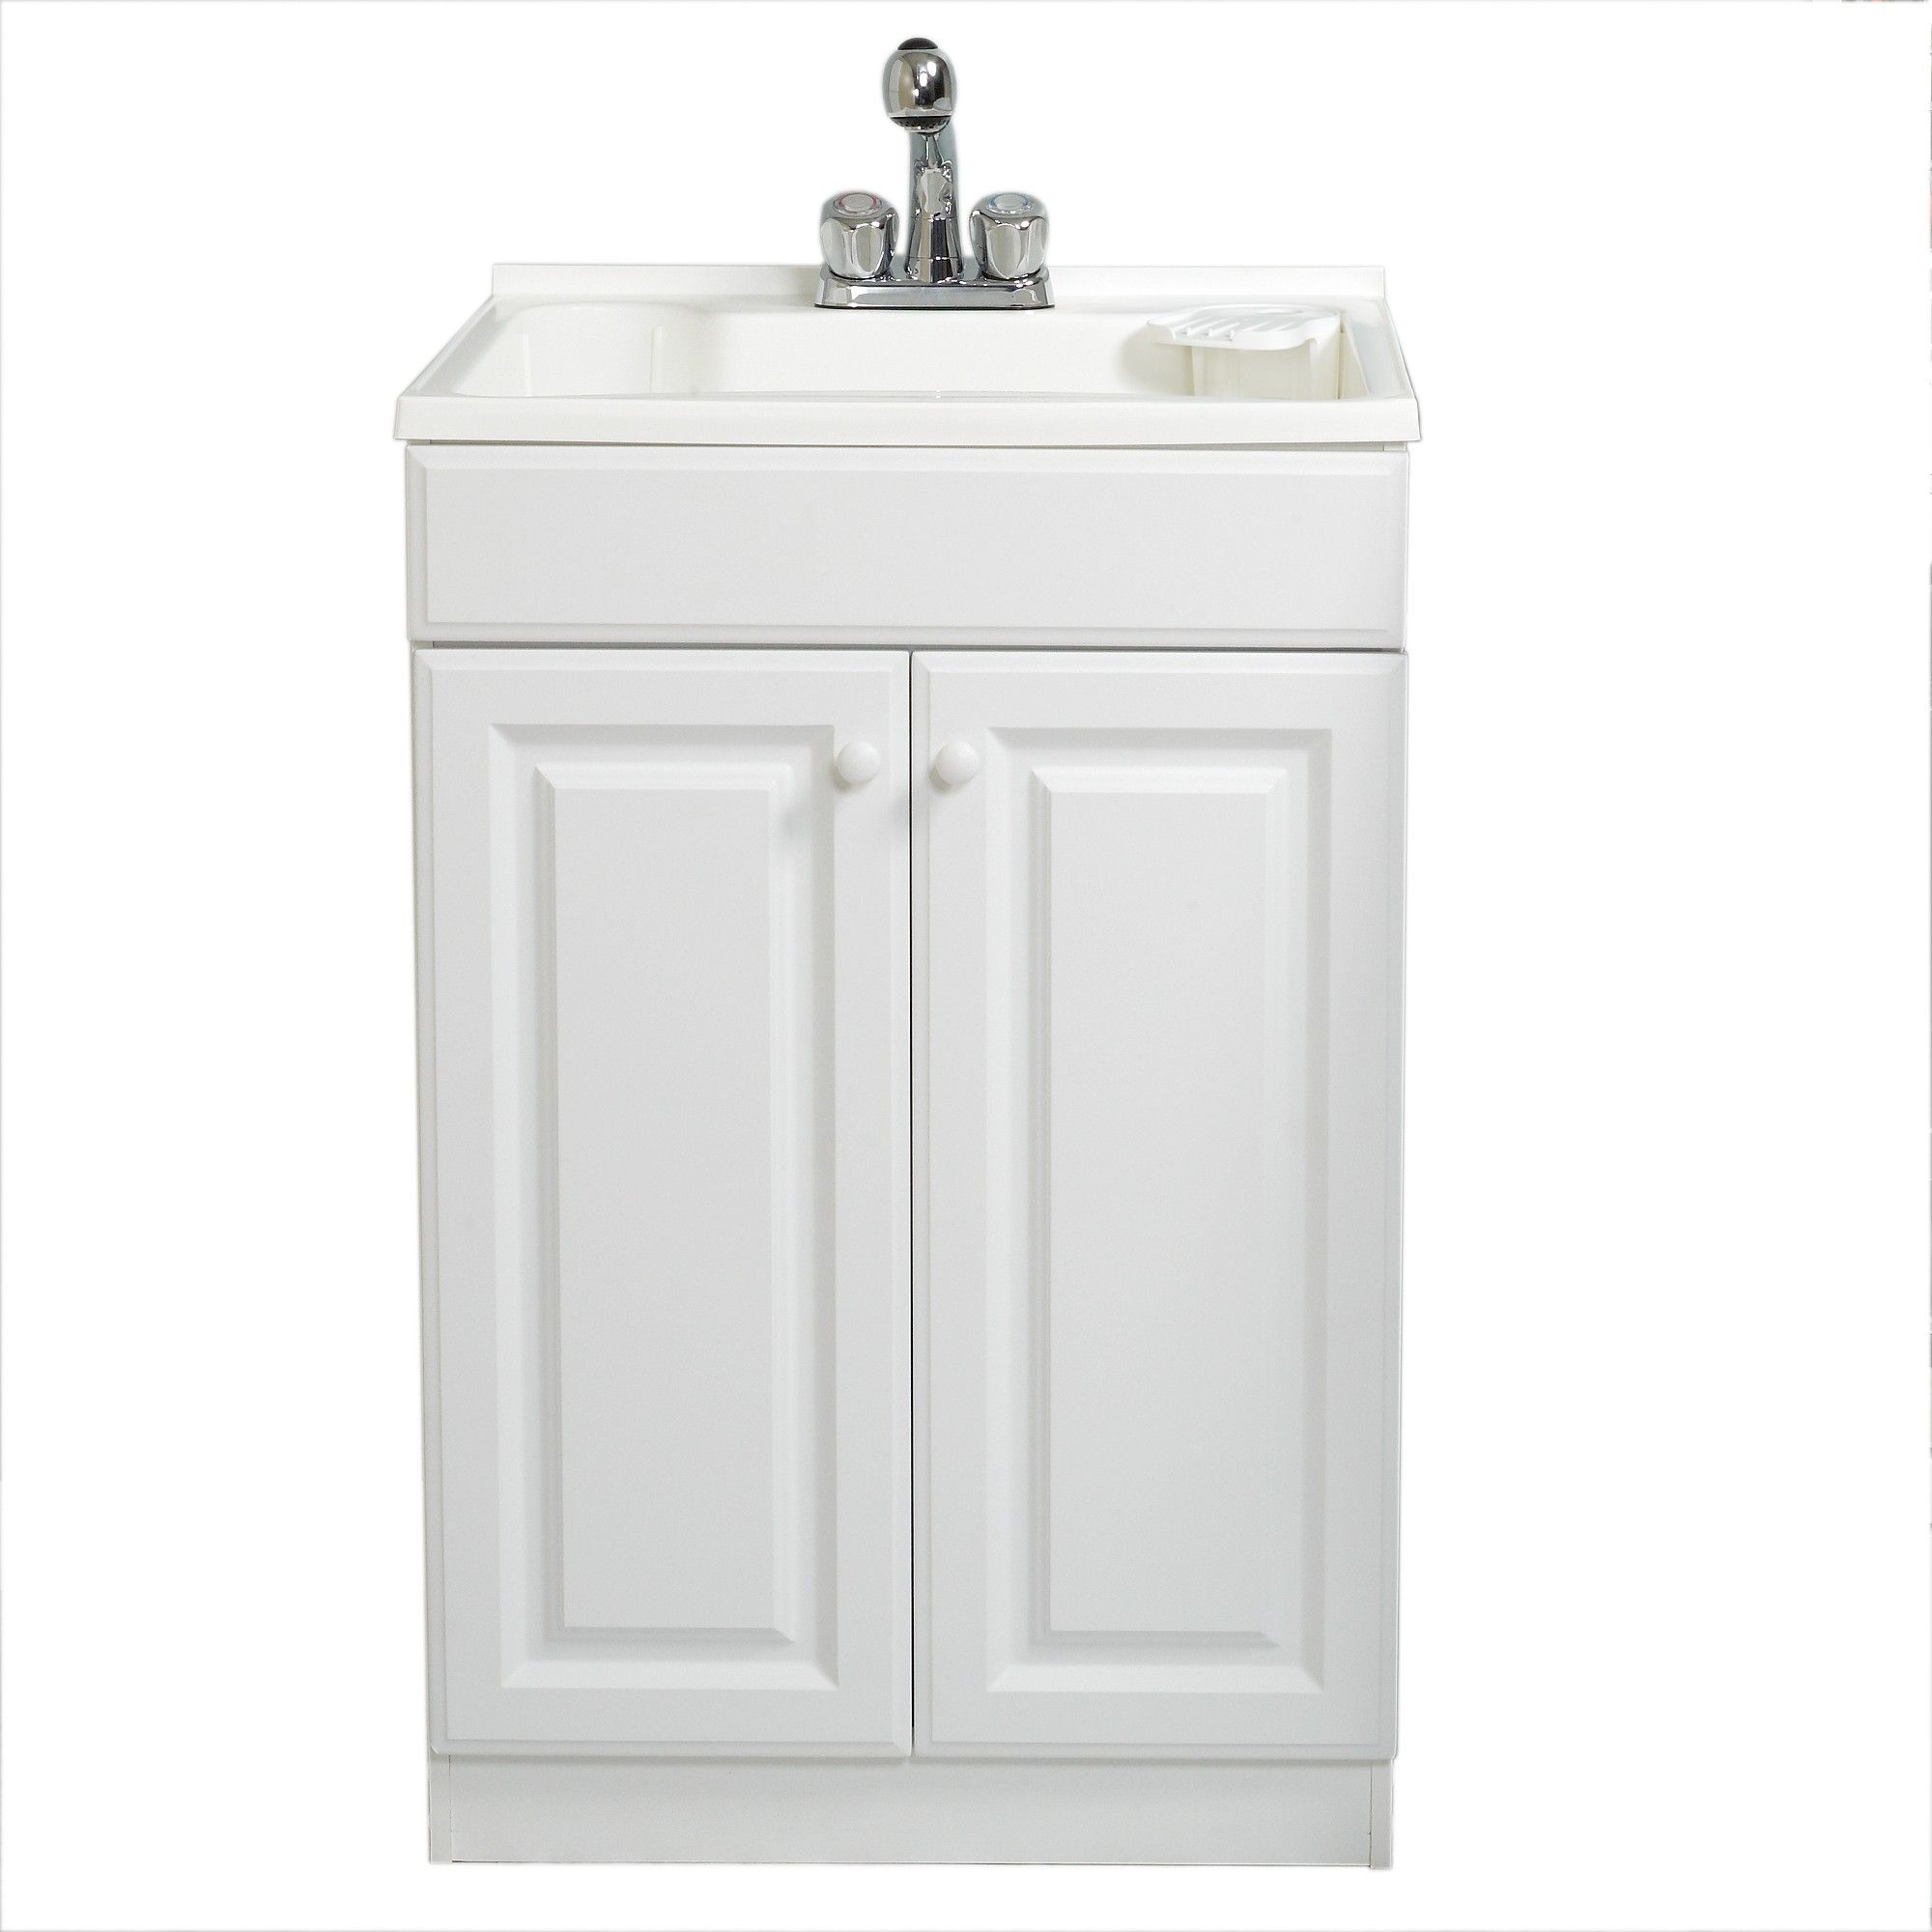 Good Style Selections Utility Tub With Cabinet   Laundry Tubs   Zenith Home  Corp. (ZPC